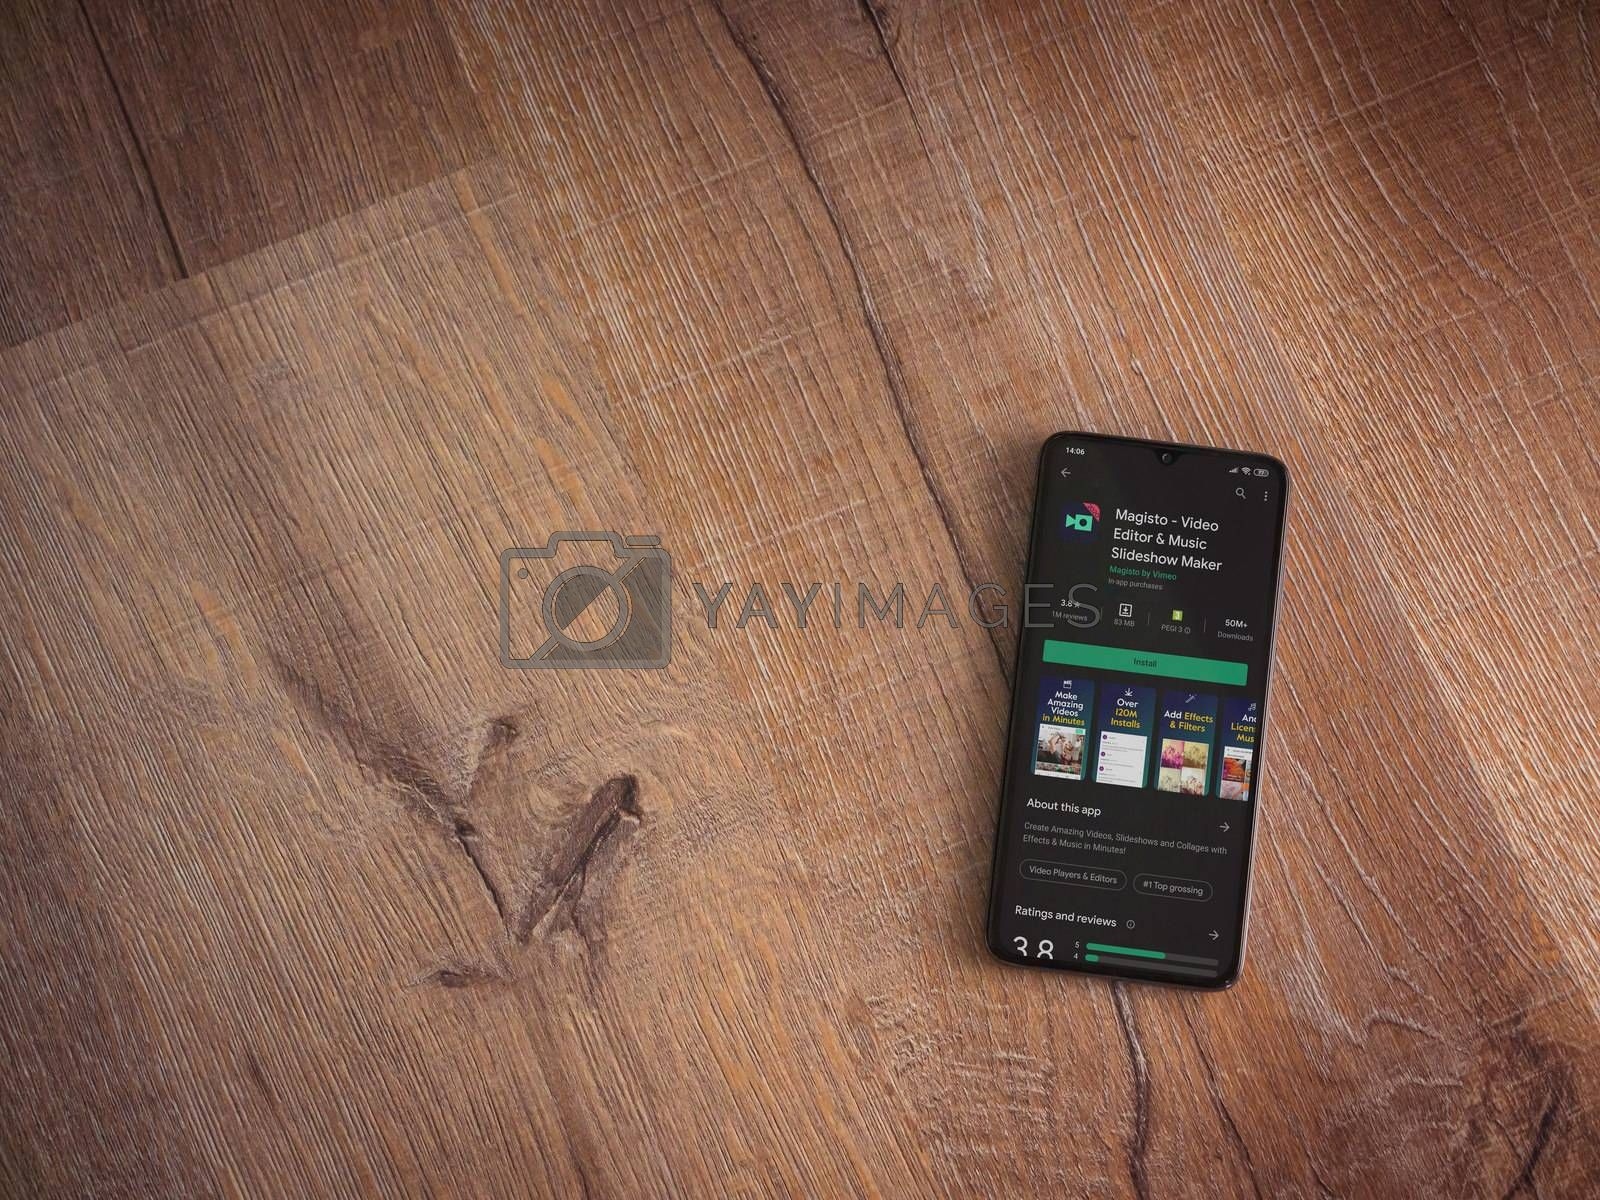 Lod, Israel - July 8, 2020: Magisto - Video Editor and Movie Maker app play store page on the display of a black mobile smartphone on wooden background. Top view flat lay with copy space.